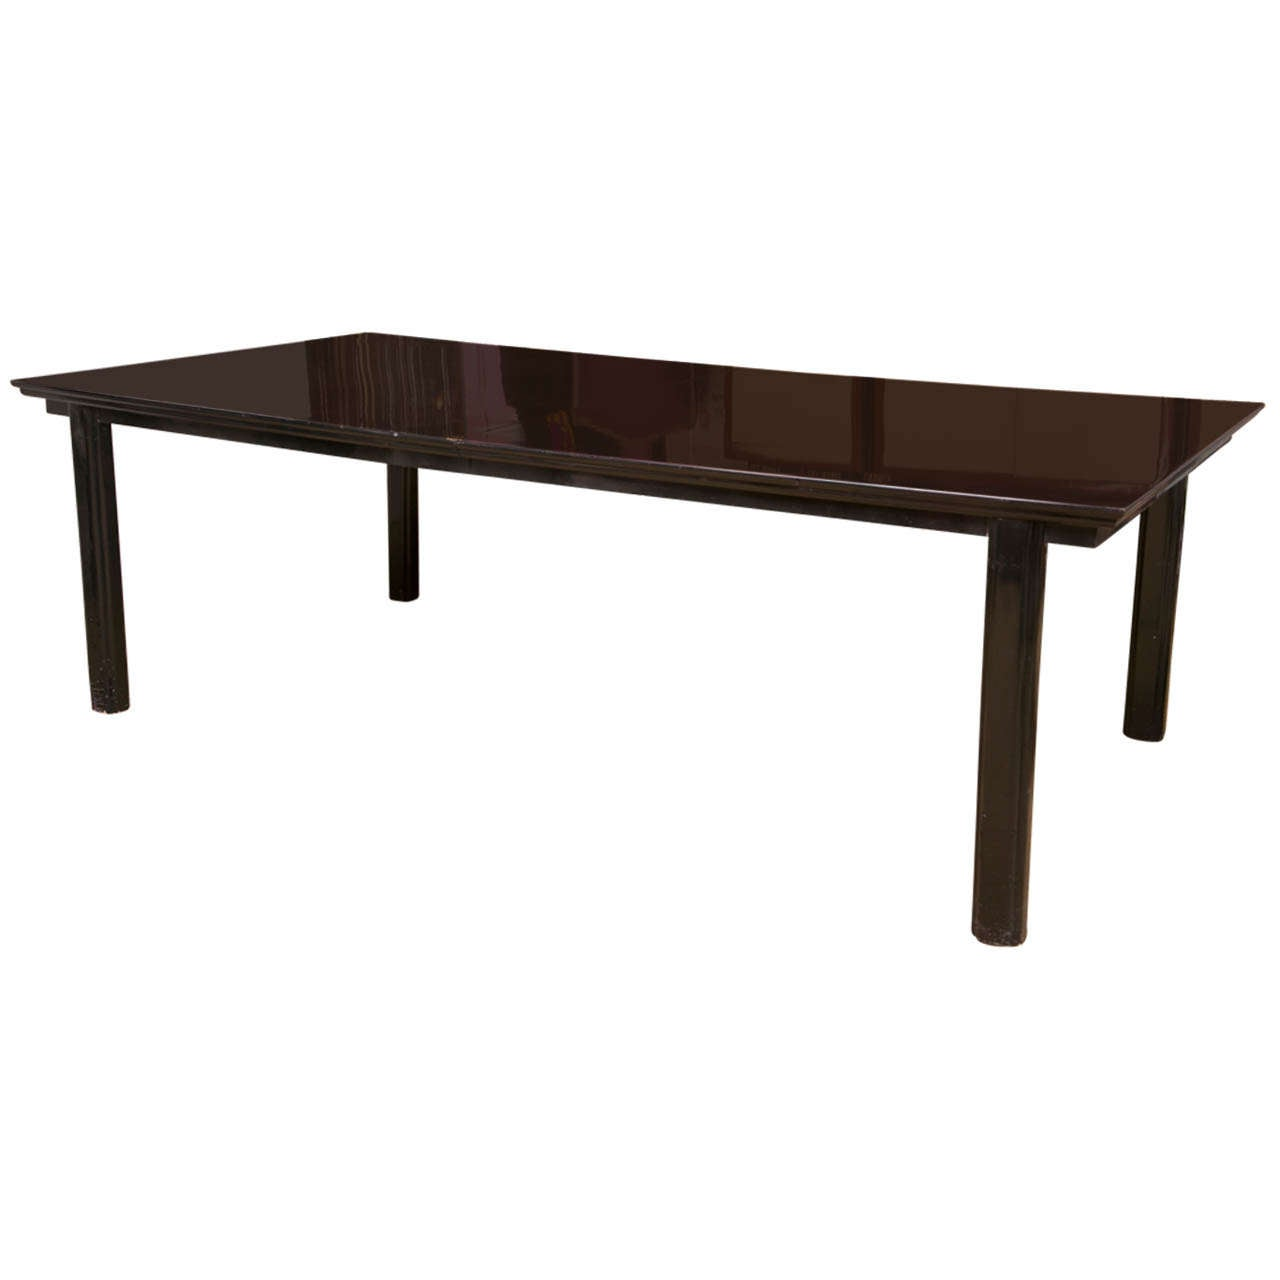 Black lacquer dining table for sale at 1stdibs for Black dining table